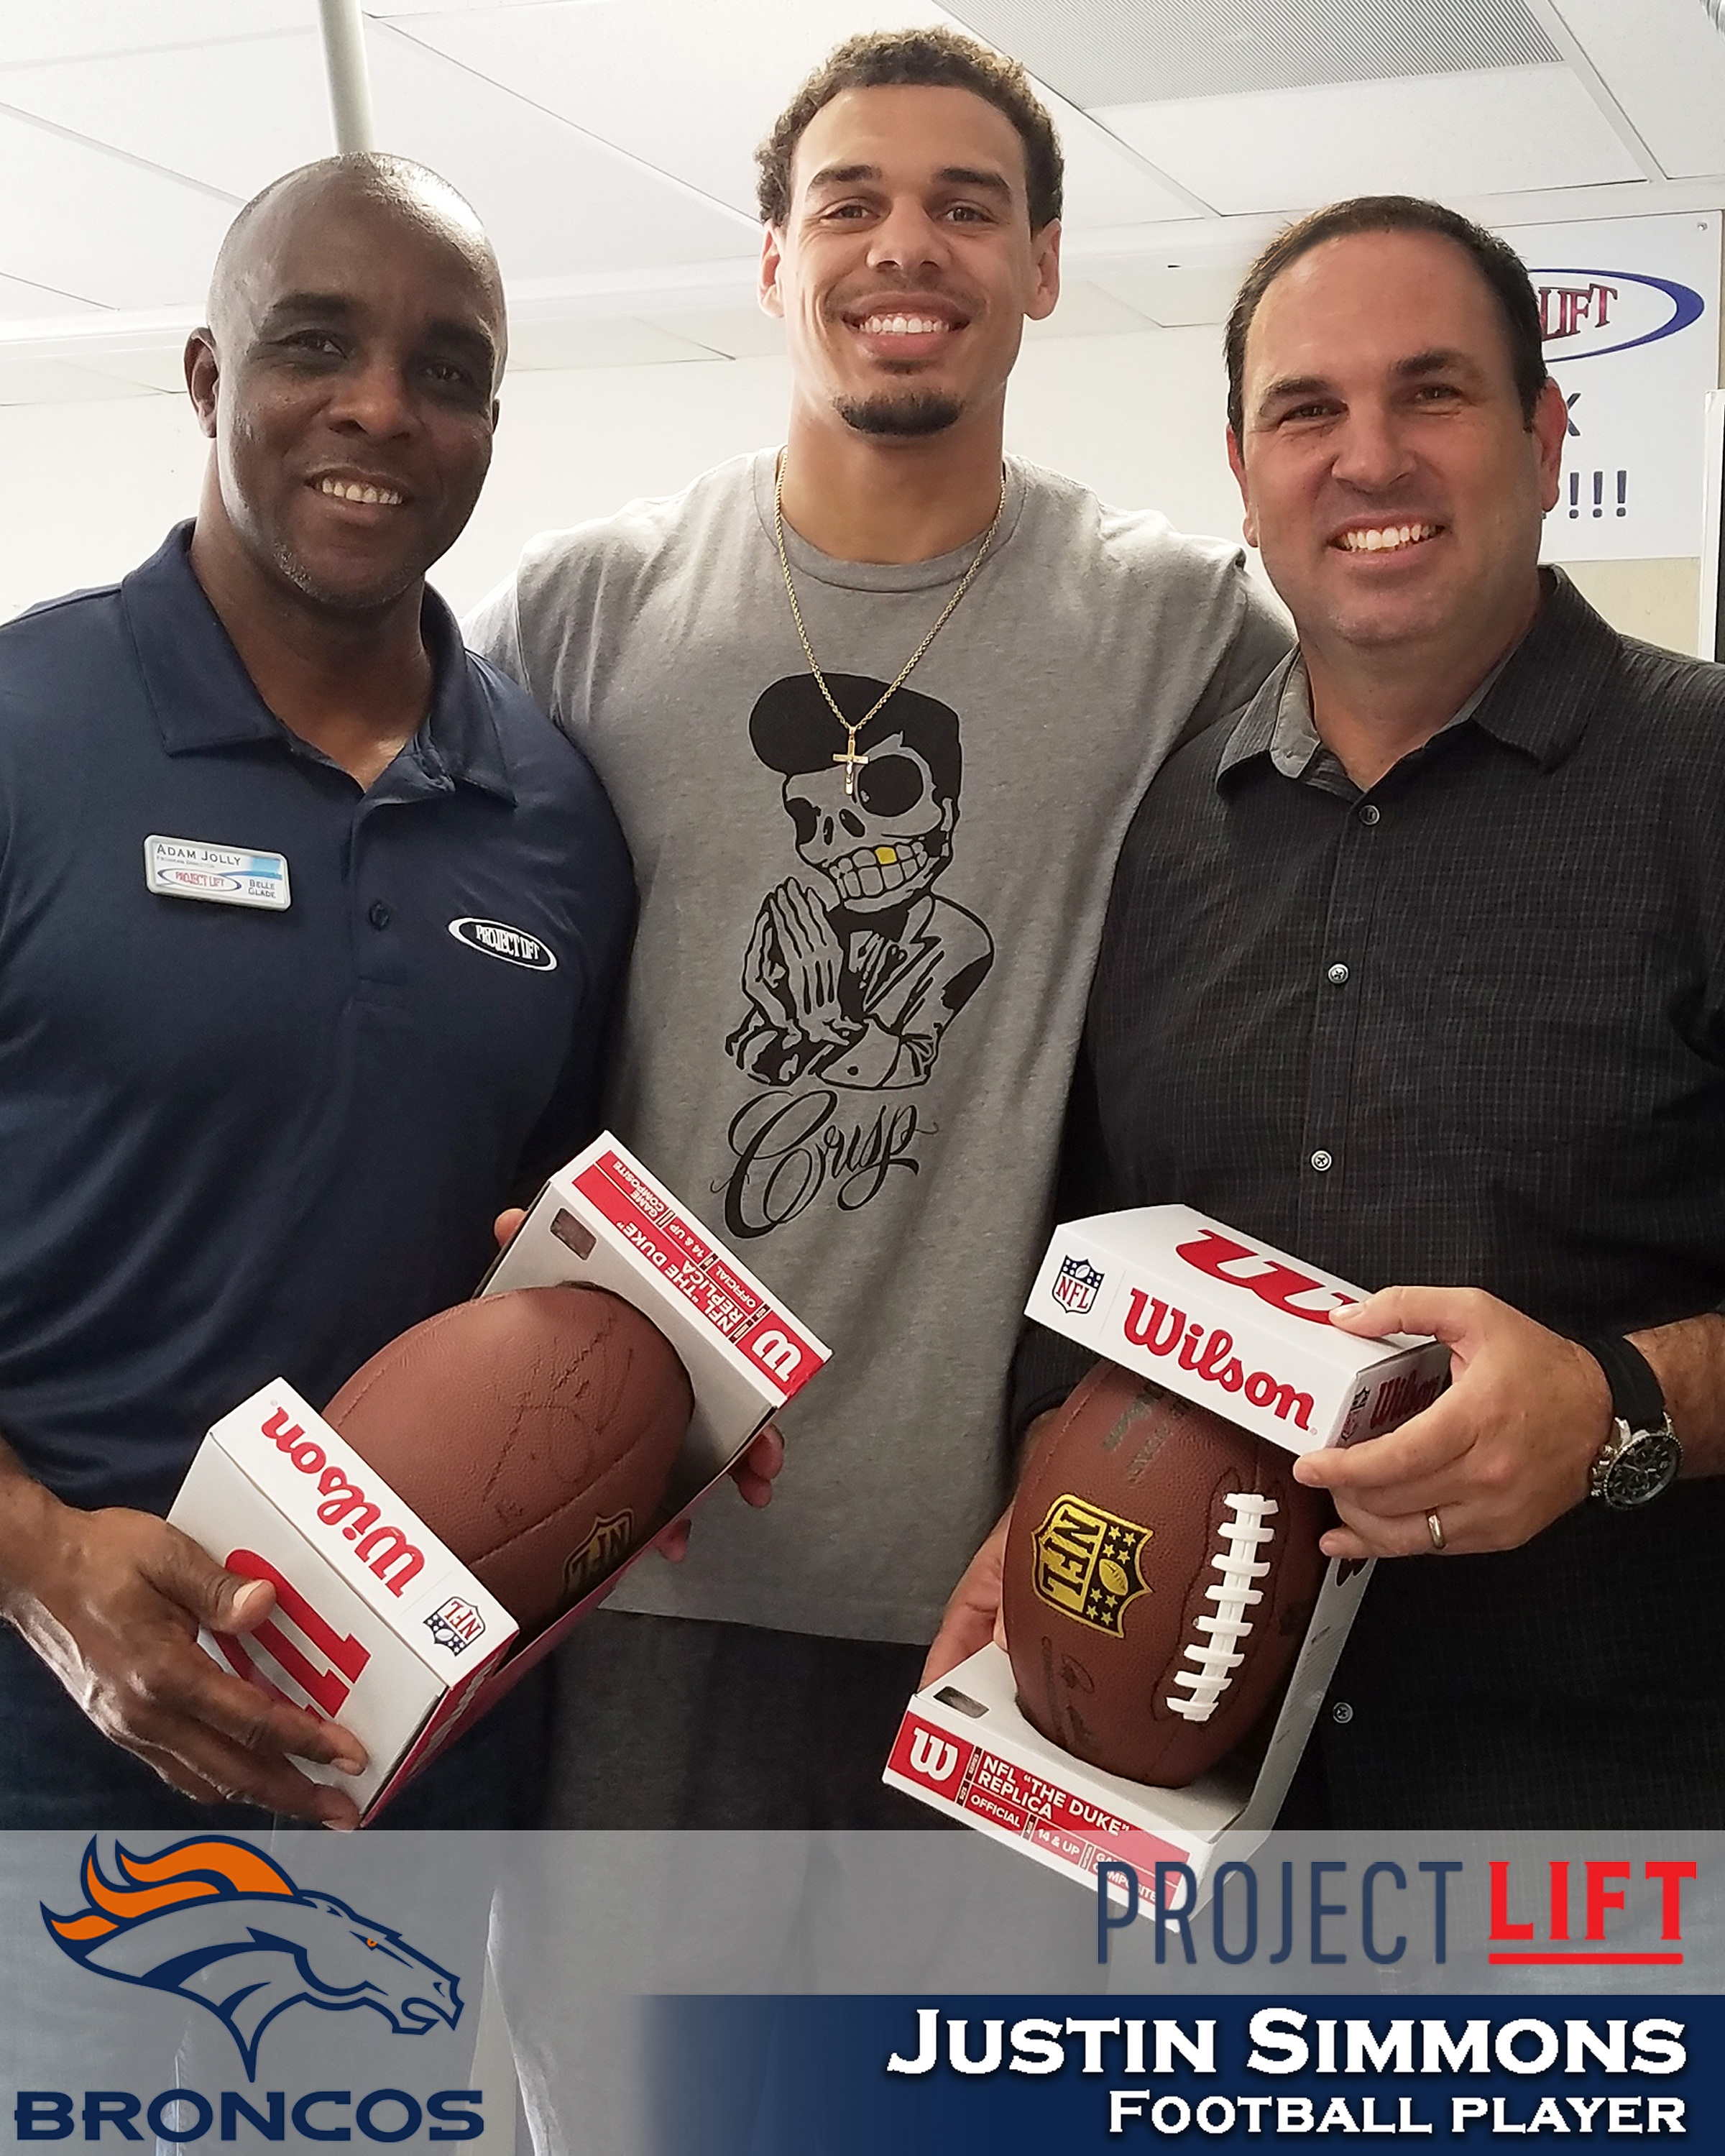 Justin Simmons, Safety for the Denver Broncos - Martin County High School Alumni, Professional Football player and proud supporter of Project LIFT!Justin stopped by to meet some of our staff and teens and to show some love to Project LIFT and our mission.Thanks so much Justin!!!